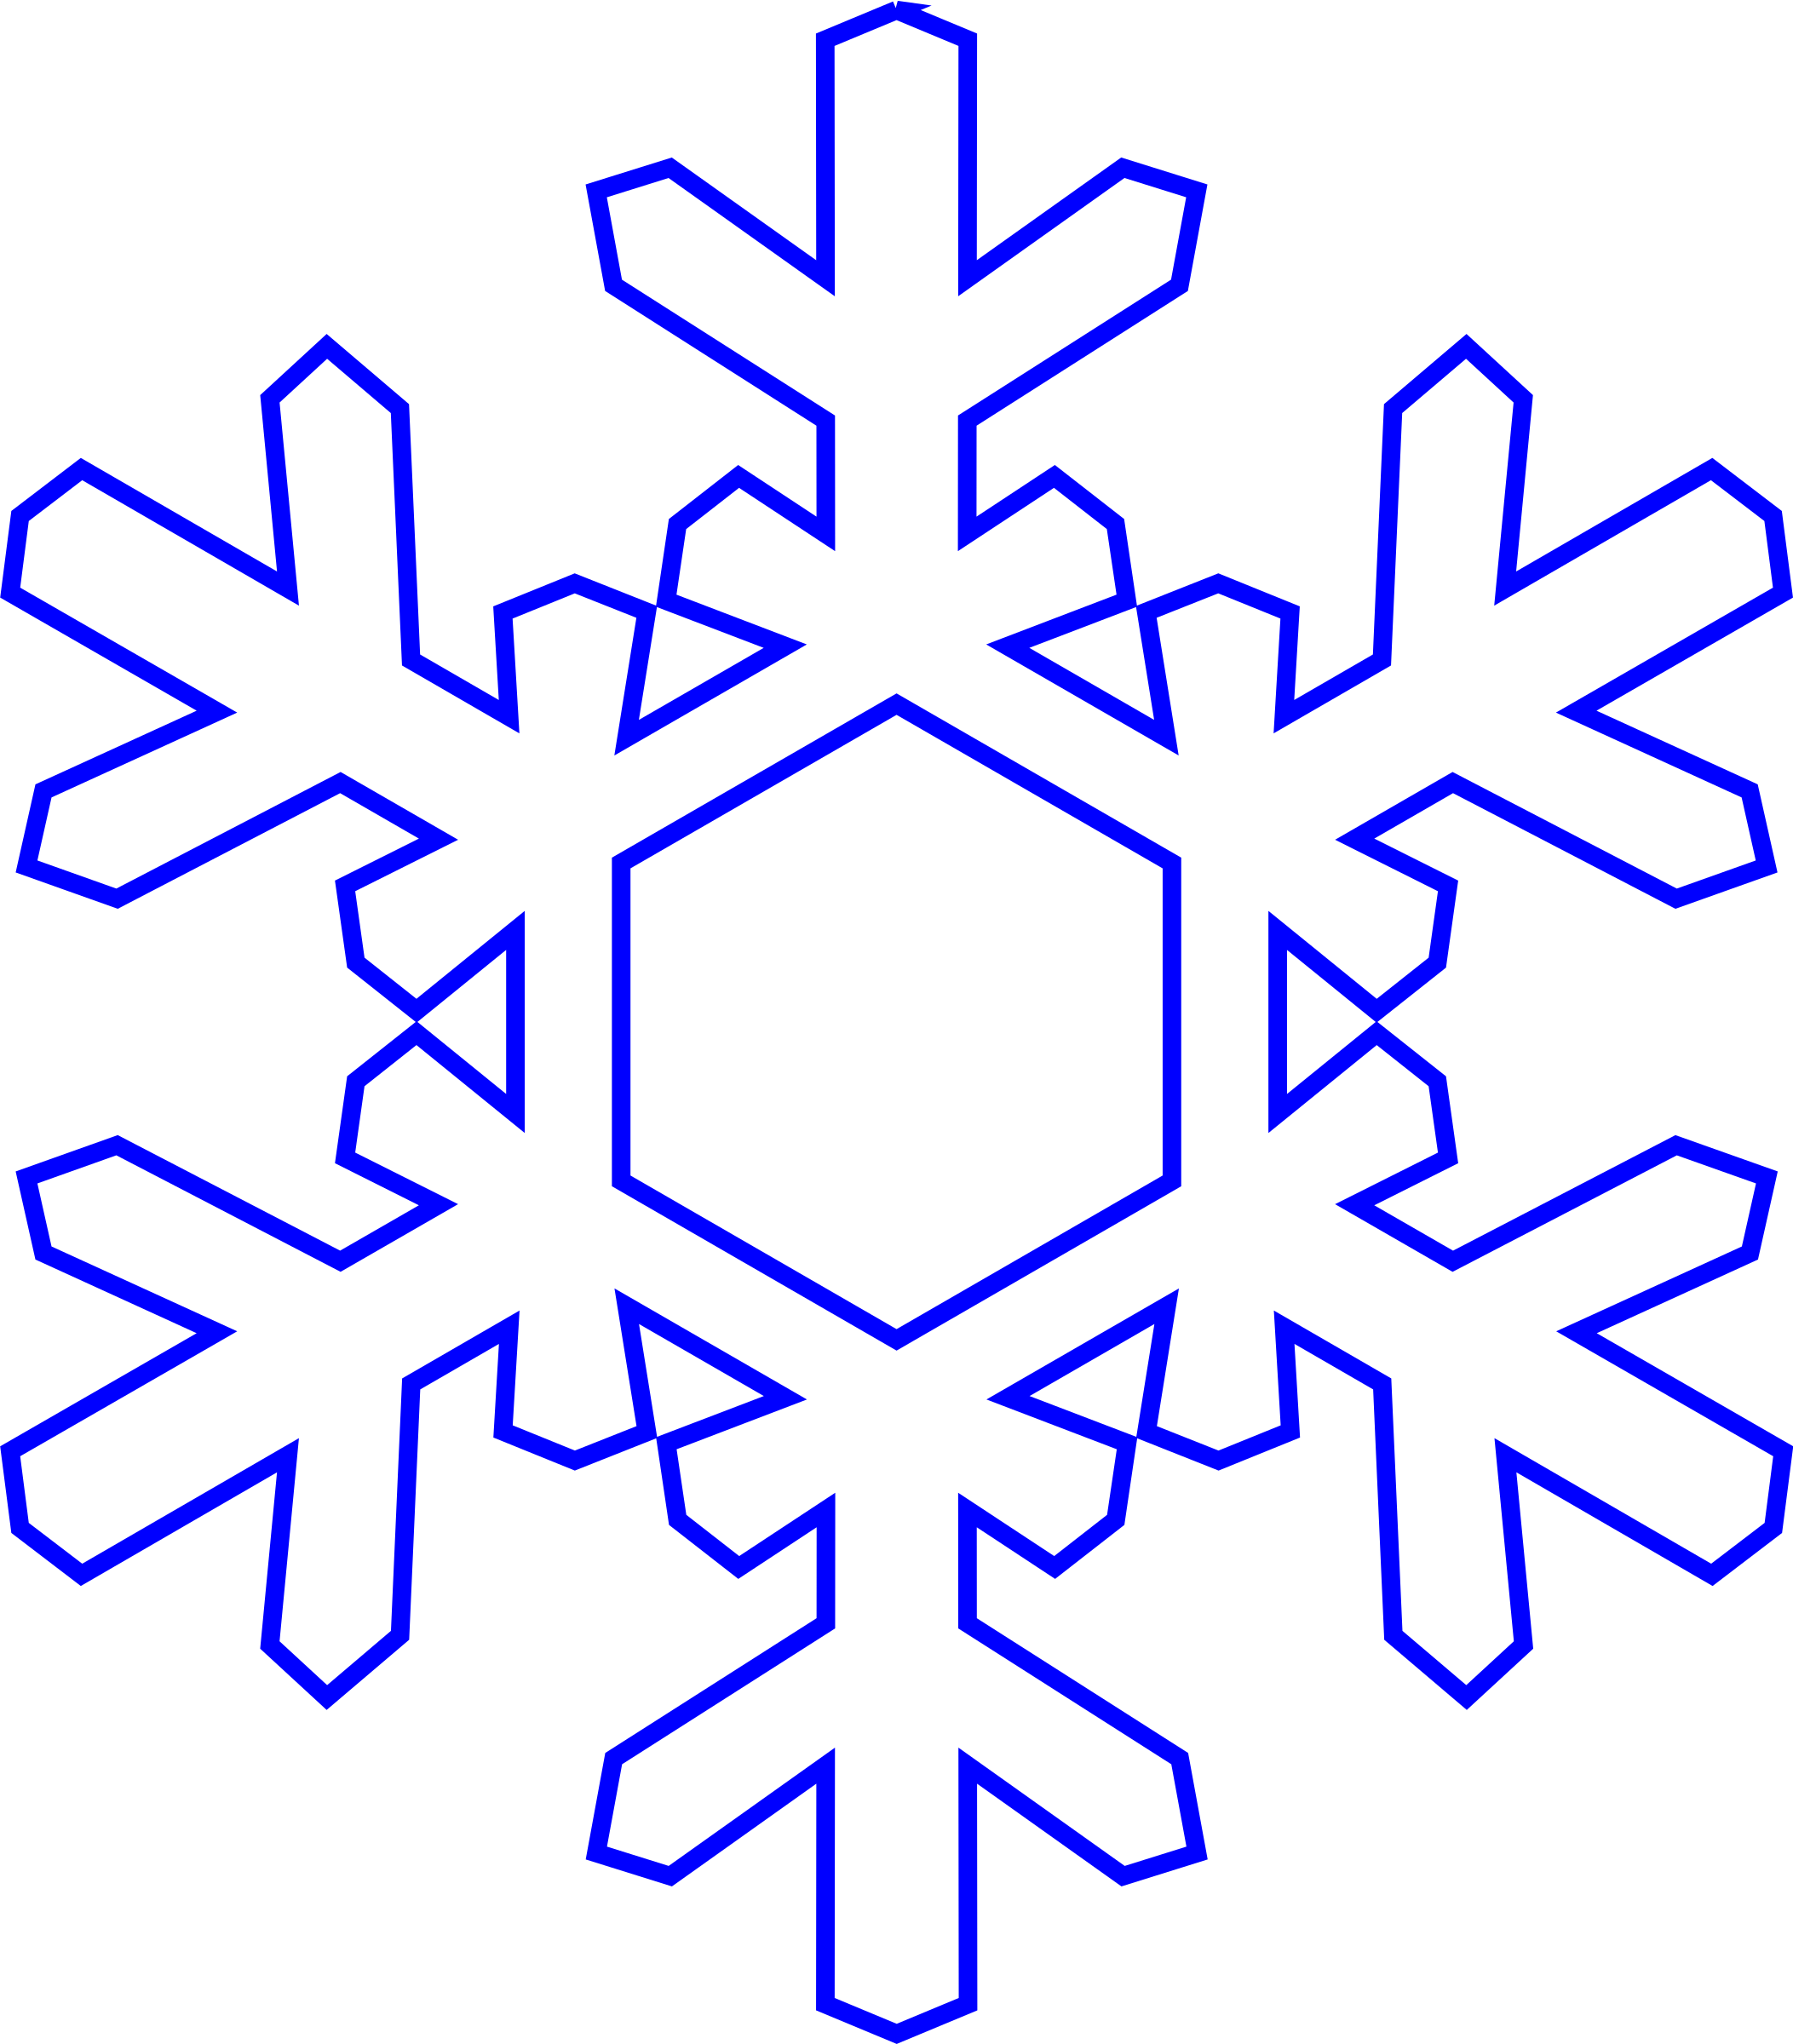 Snowflake clipart frozen picture transparent library Real Snowflake Cliparts | jokingart.com Snowflake Clipart picture transparent library